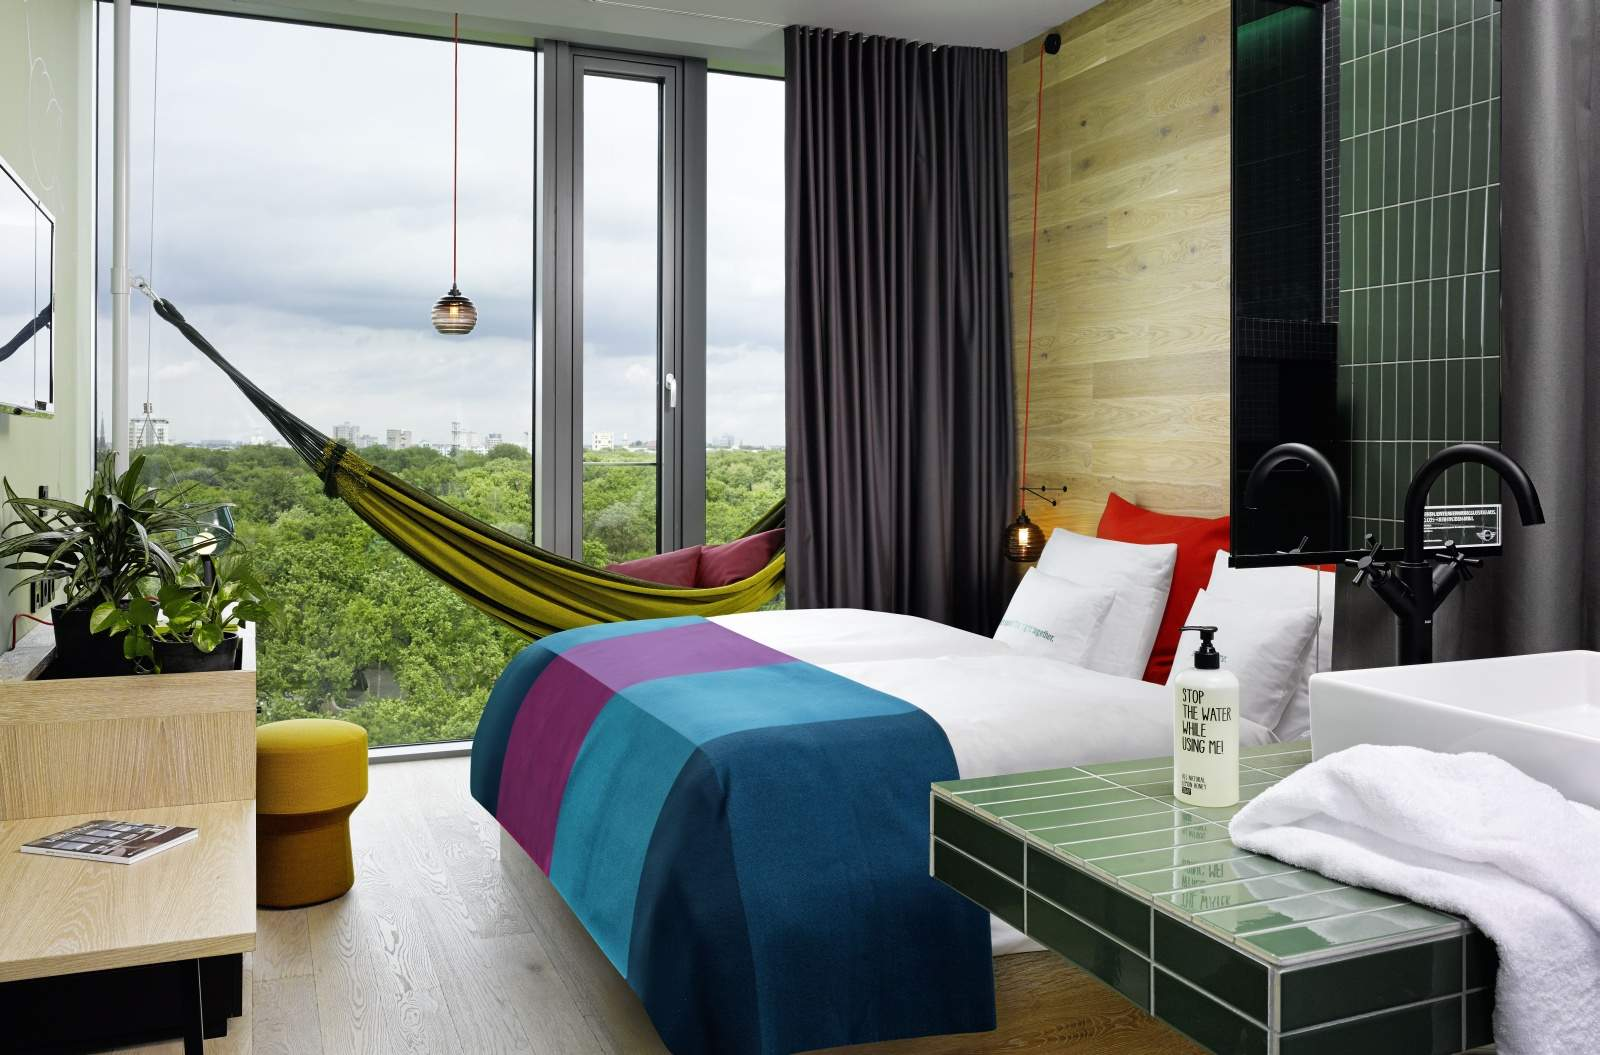 26 25hours hotel bikini berlin jungle room m hangematte zooblick gross